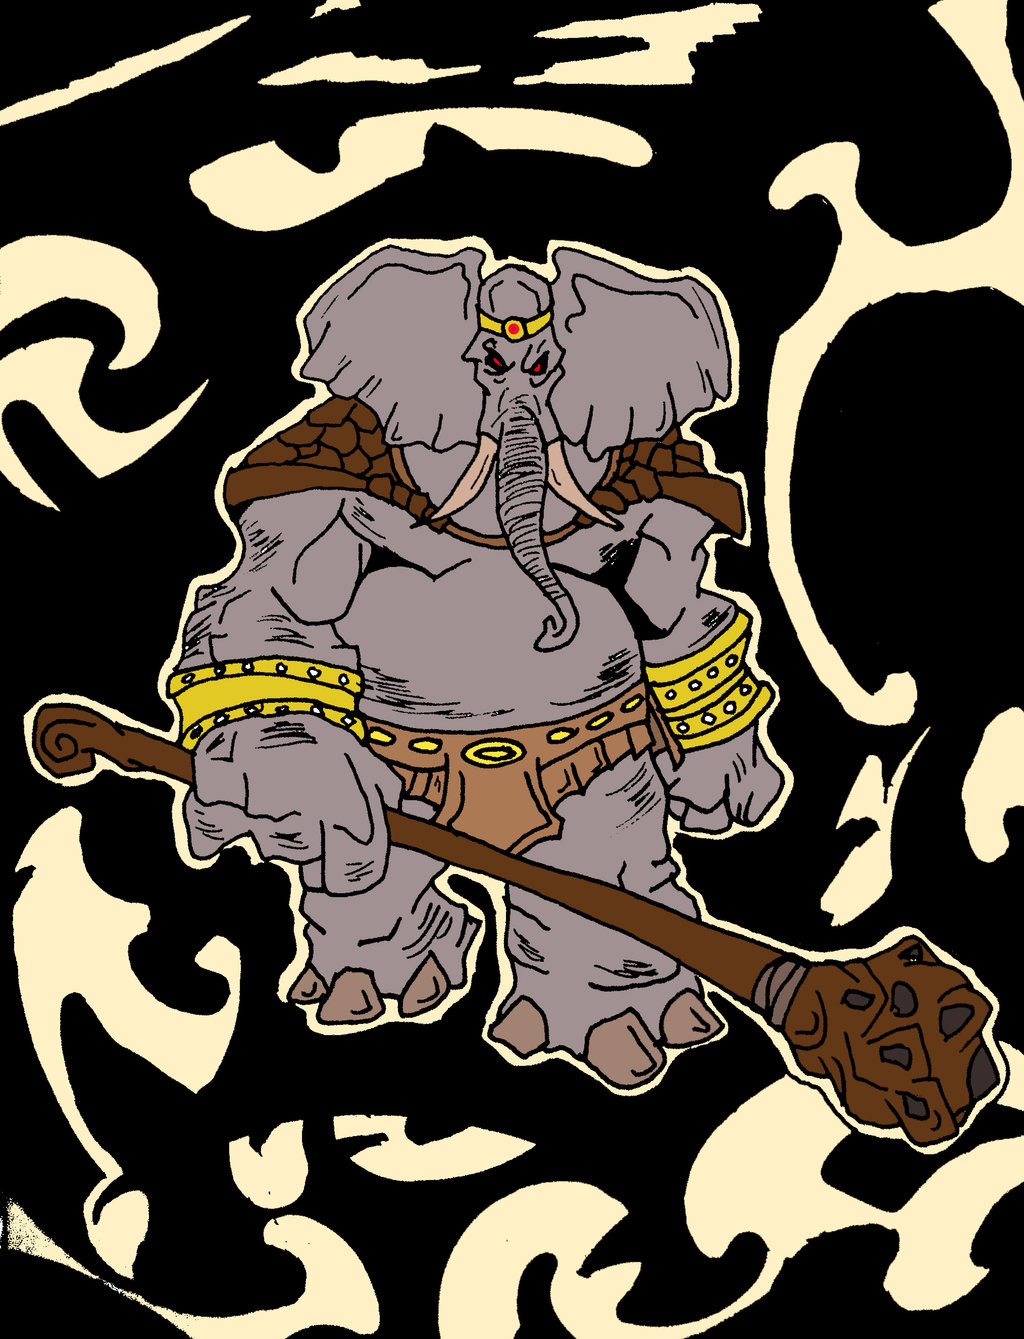 elephant_warrior_by_secondsoul90-d68i661.jpg